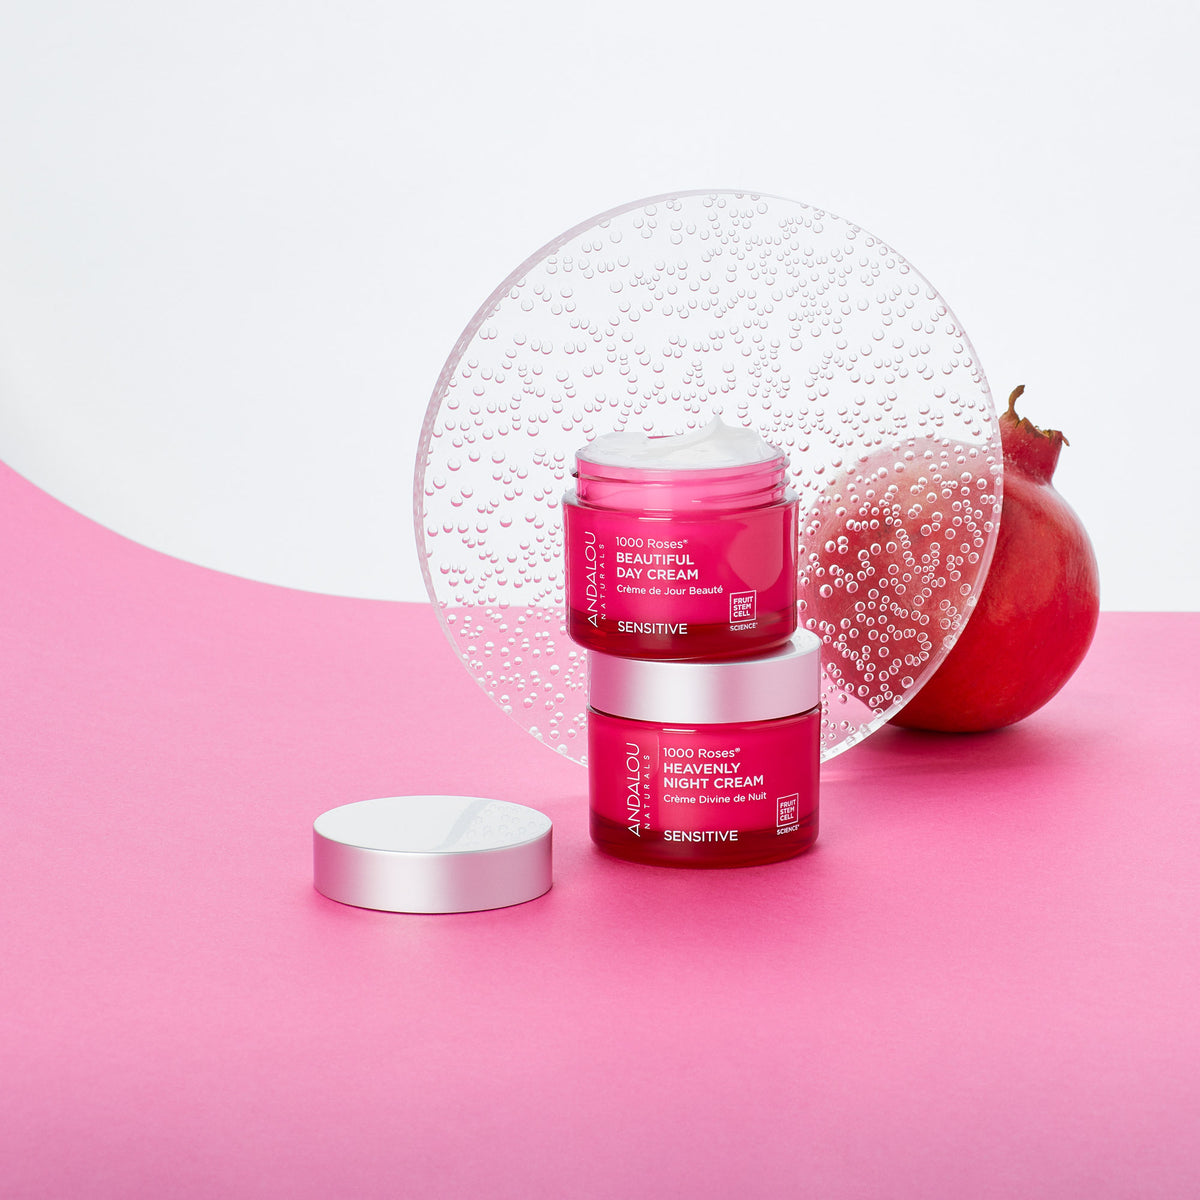 Andalou Naturals Sensitive 1000 Roses Beautiful Day Cream jars with a pomegrante